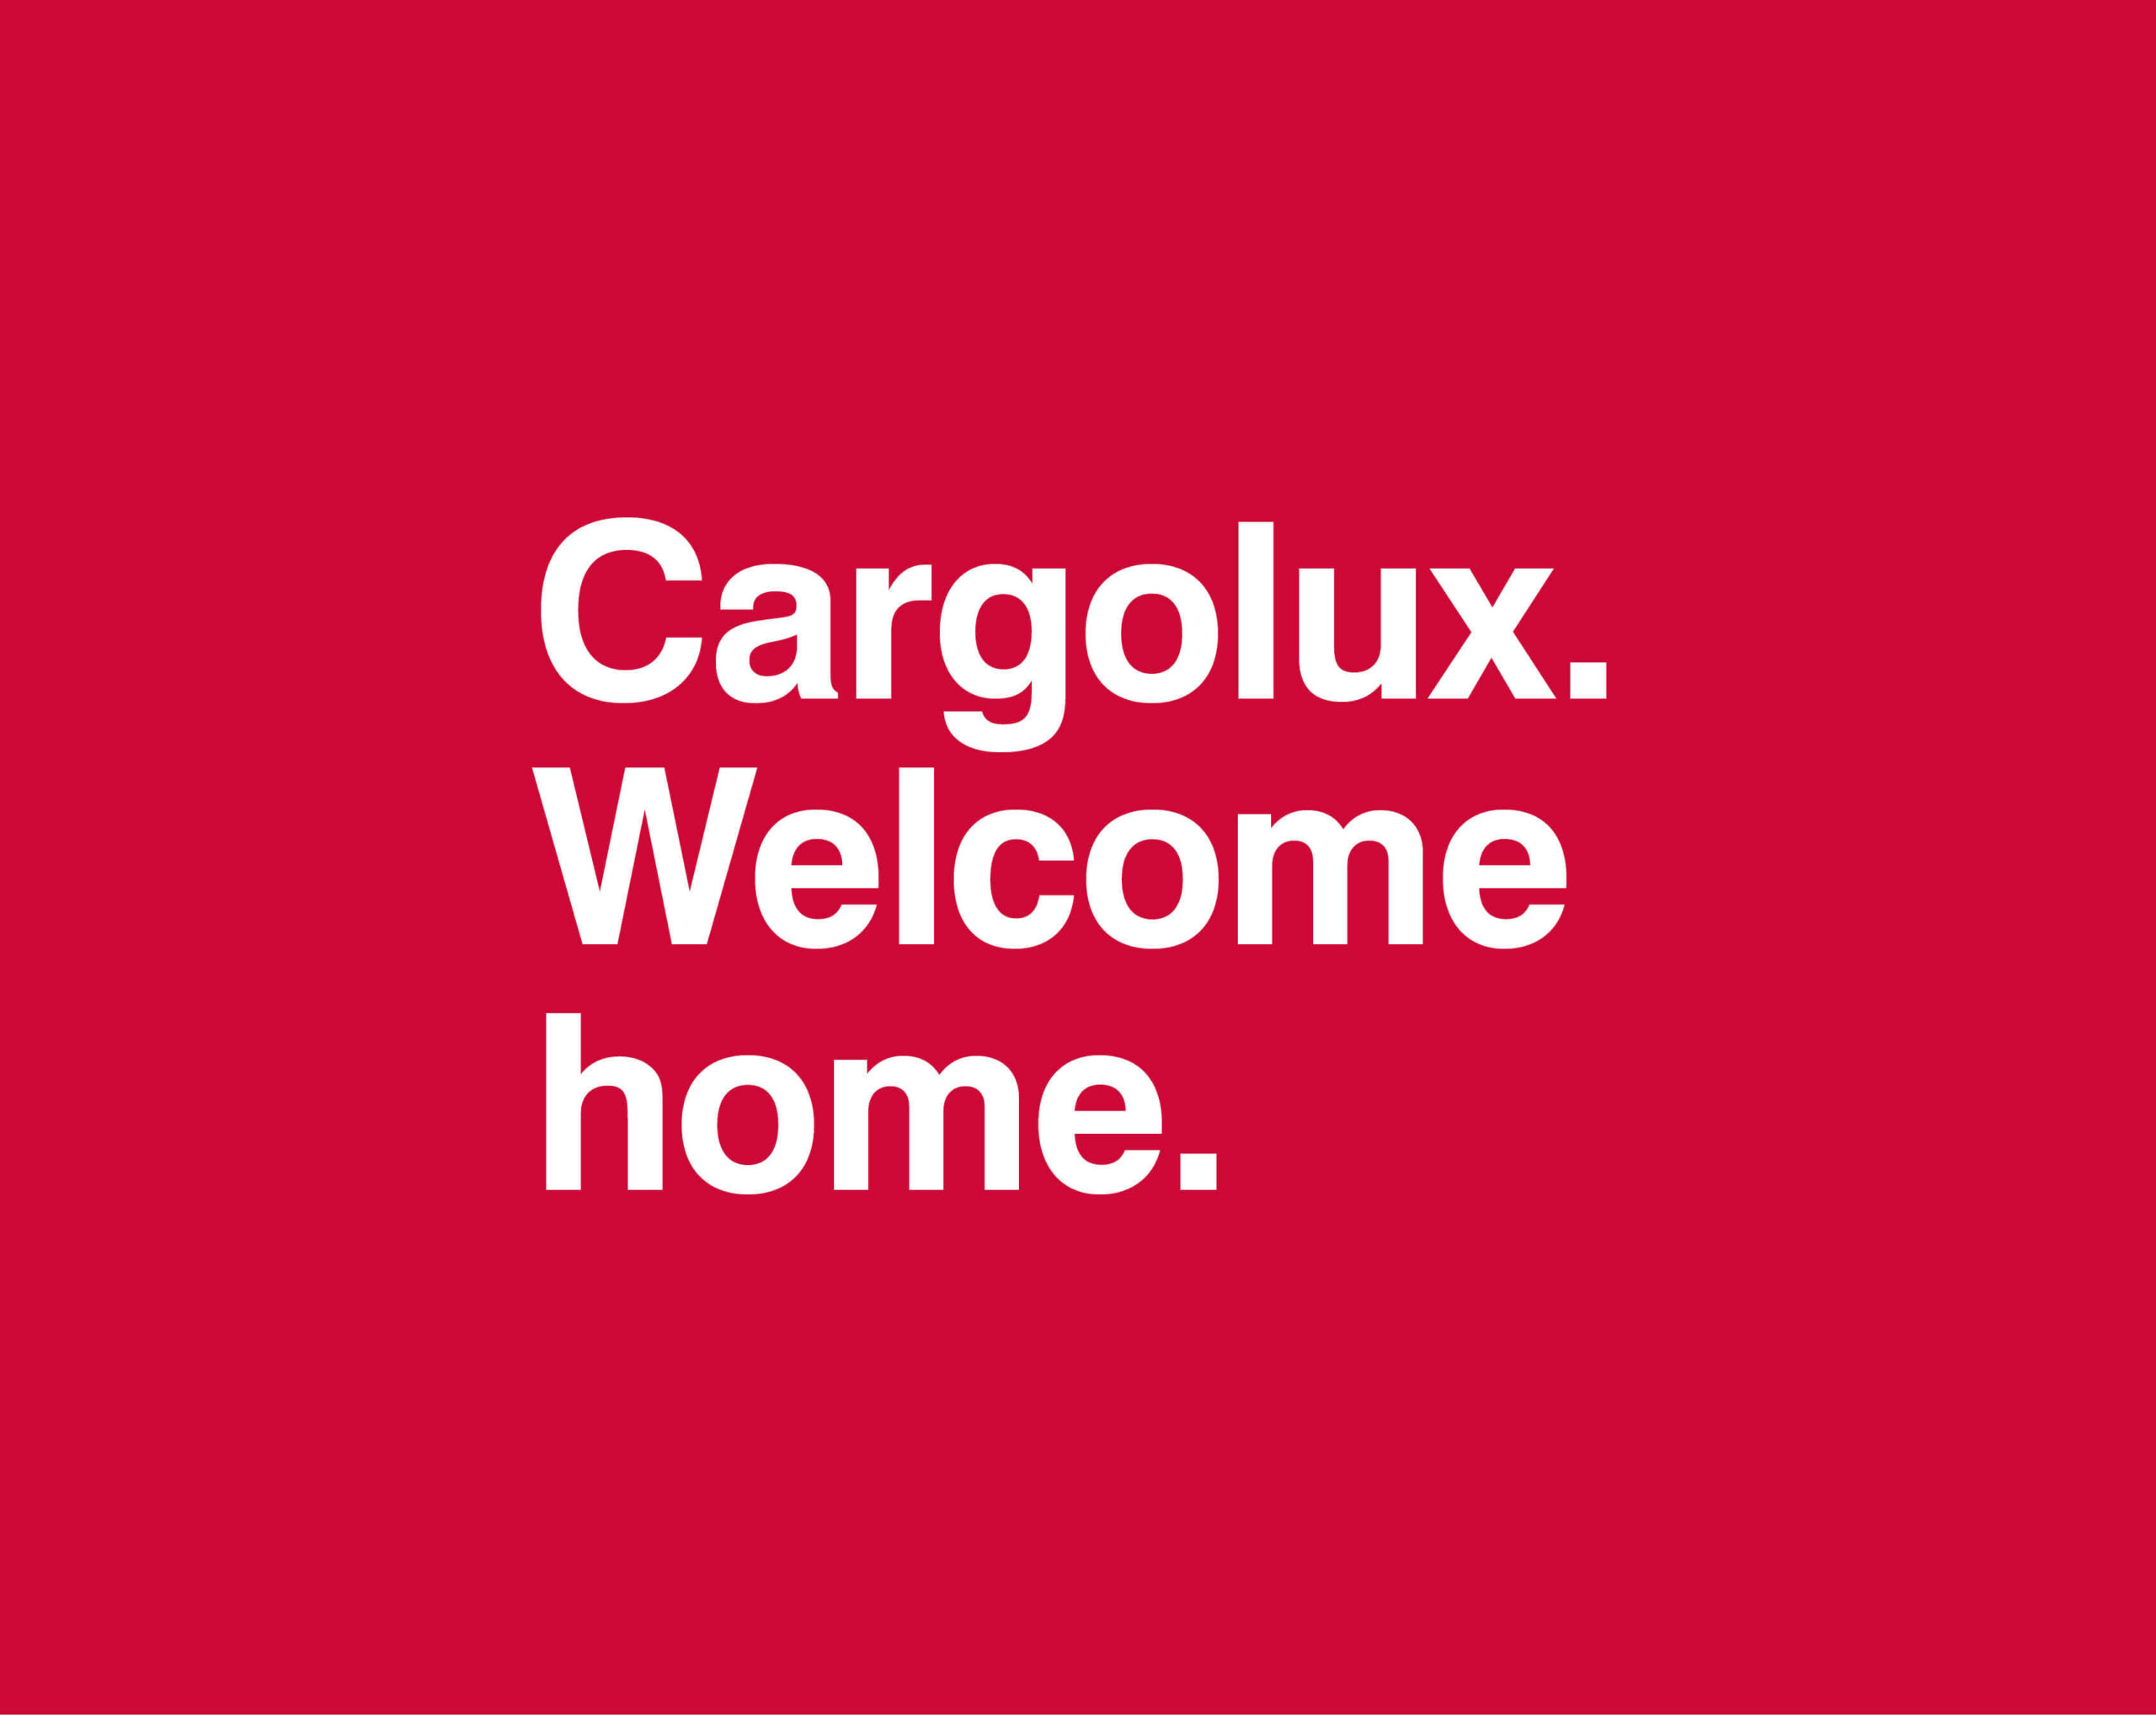 Cargolux - Welcome Home